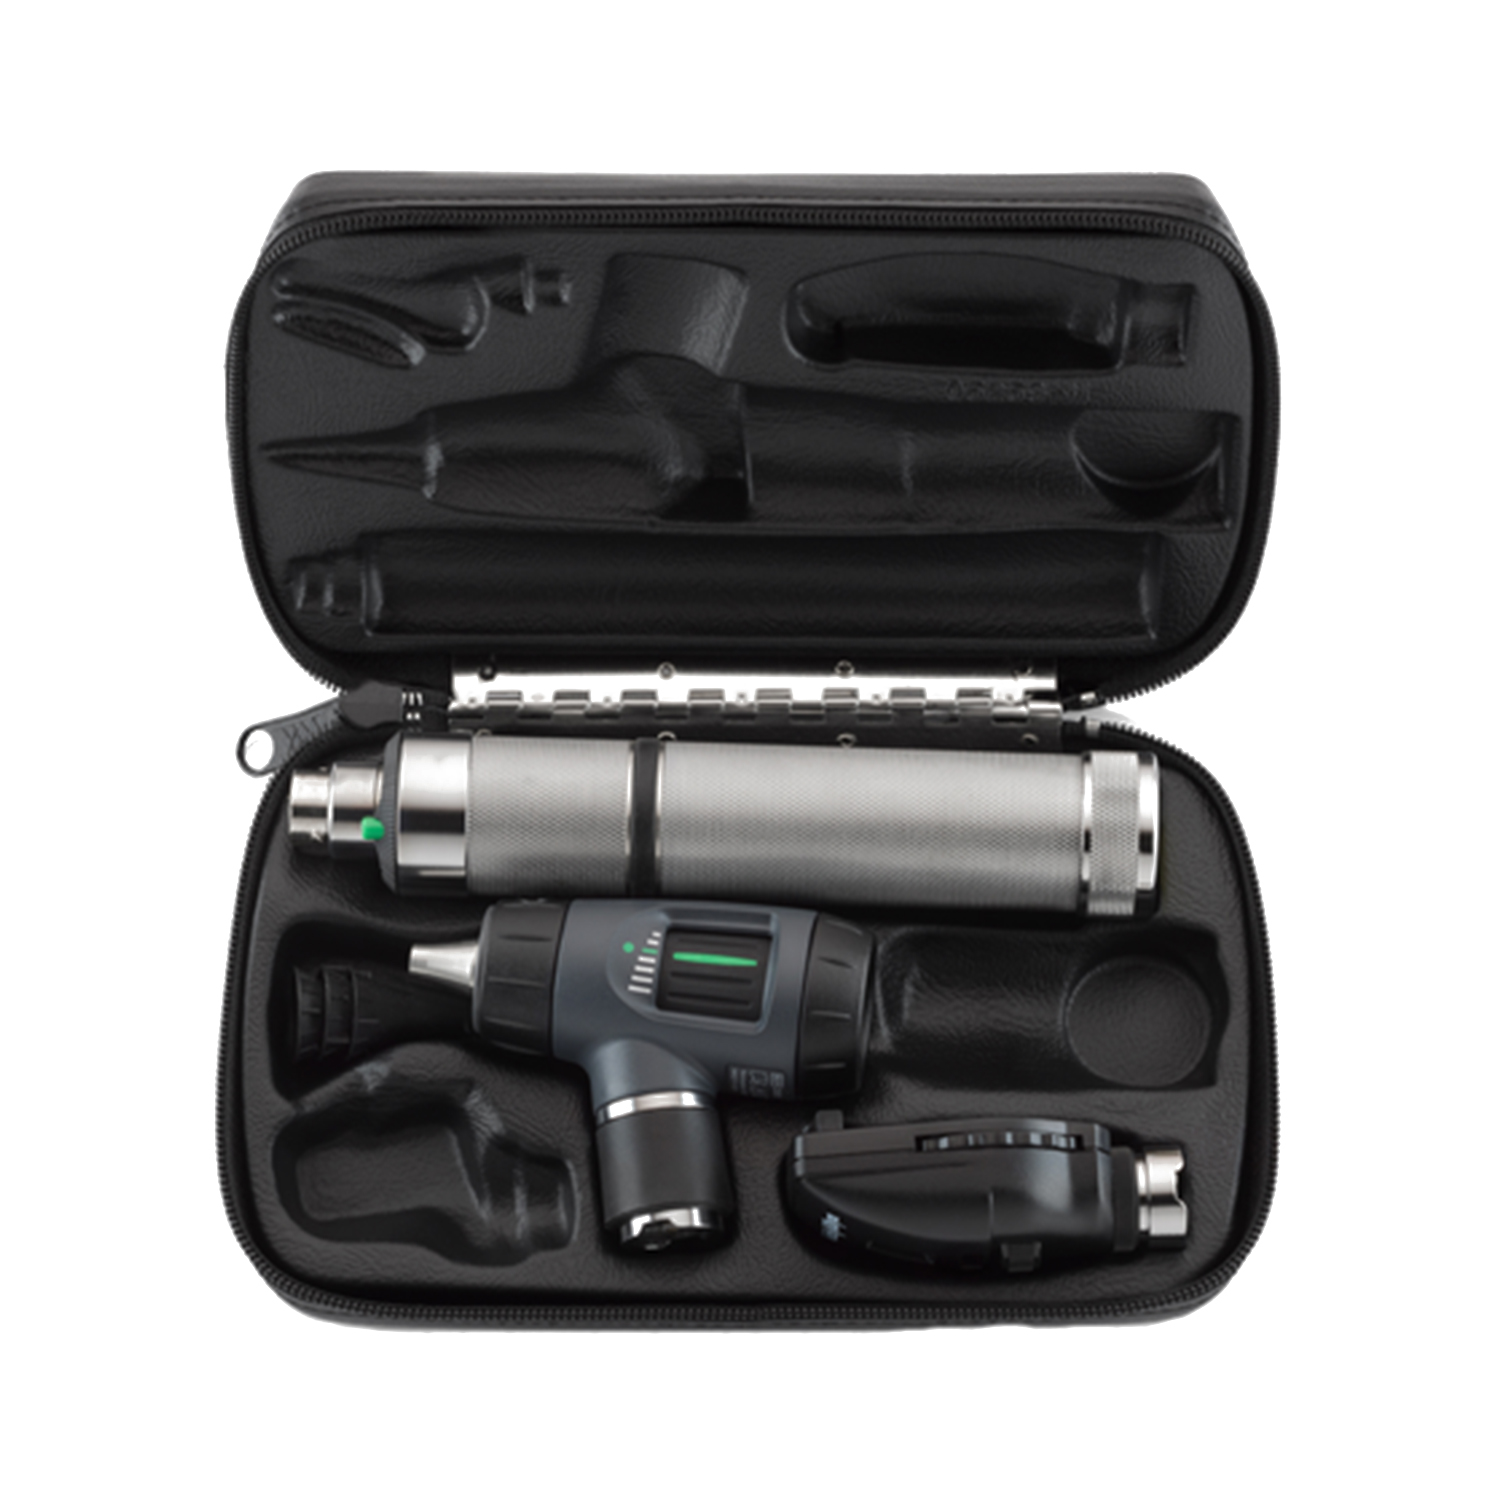 Standard Ophthalmoscope, MacroView Otoscope, Rechargeable Nickel Cadmium Handle, Hard Case